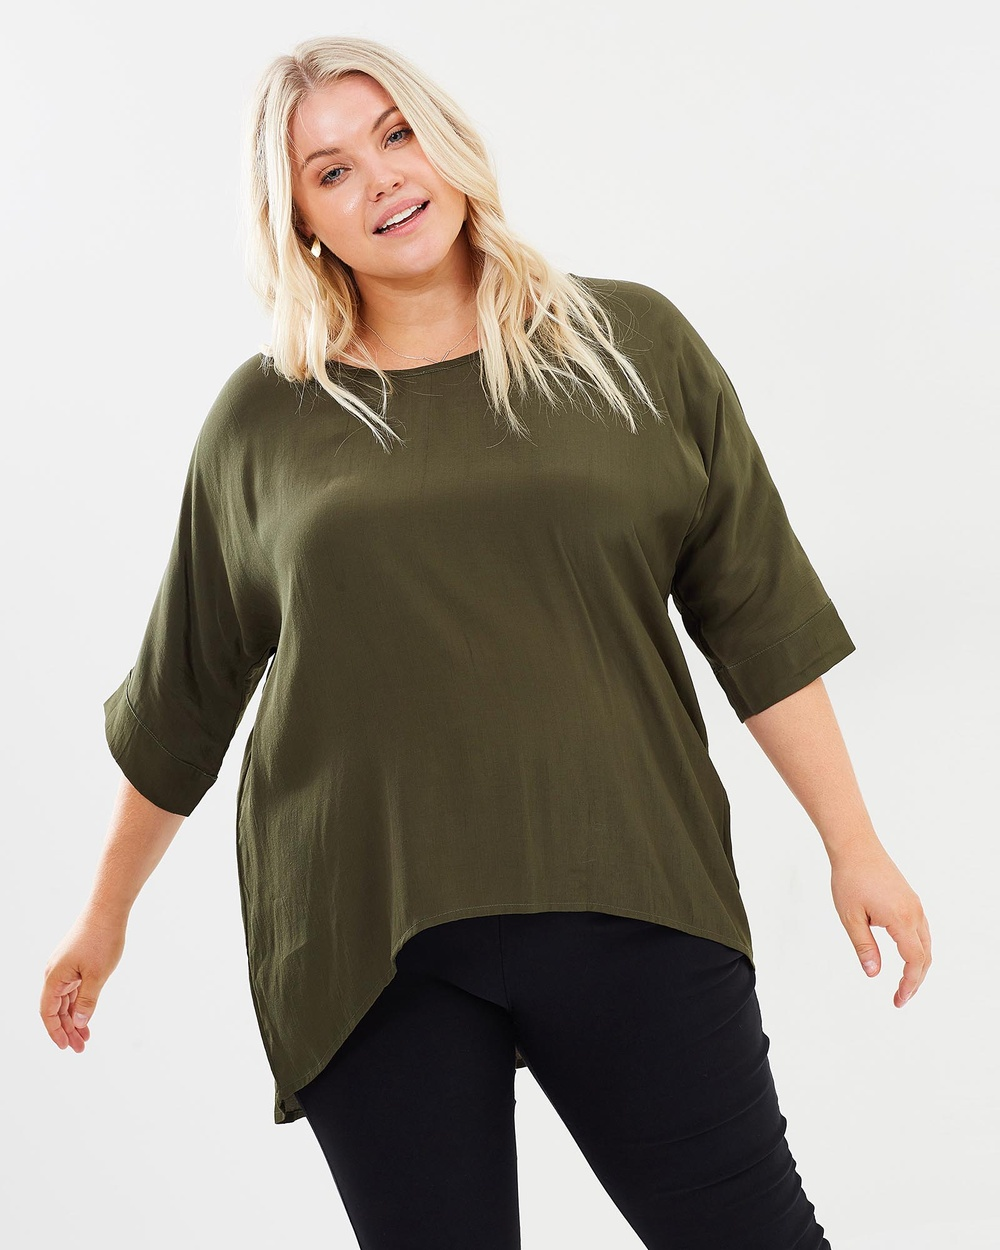 Adrift Calie Top Tops Khaki Calie Top